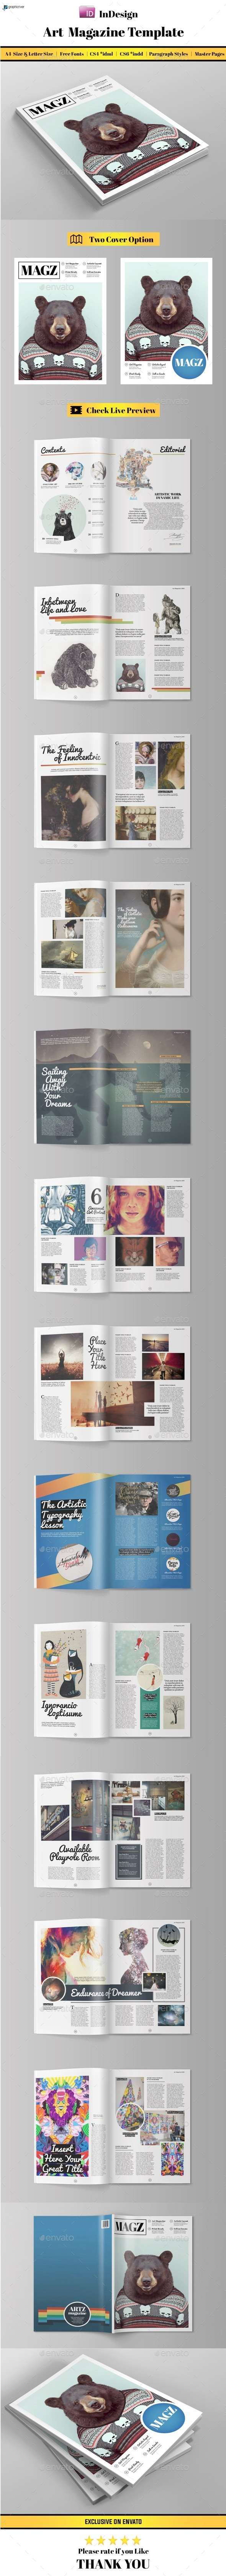 GraphicRiver Art Magazine Template 11109722